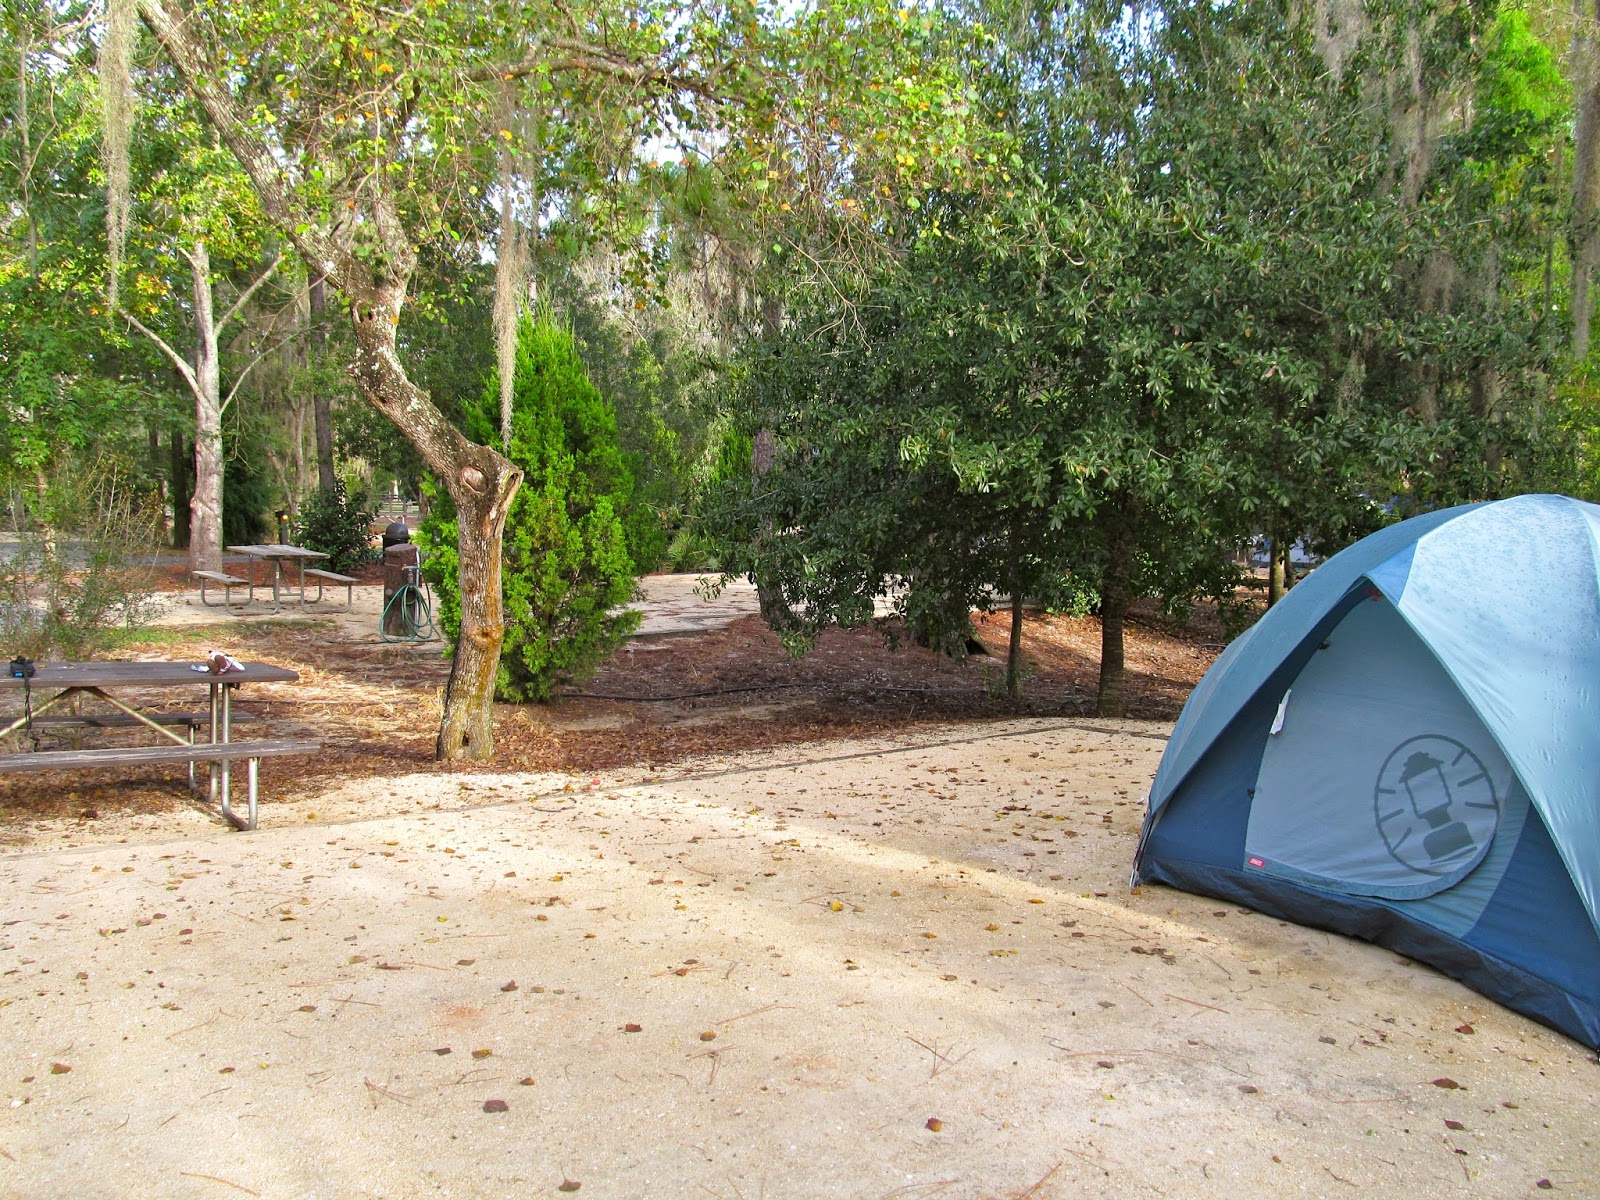 Tent Camping in Fort Wilderness at The Walt Disney World Resort